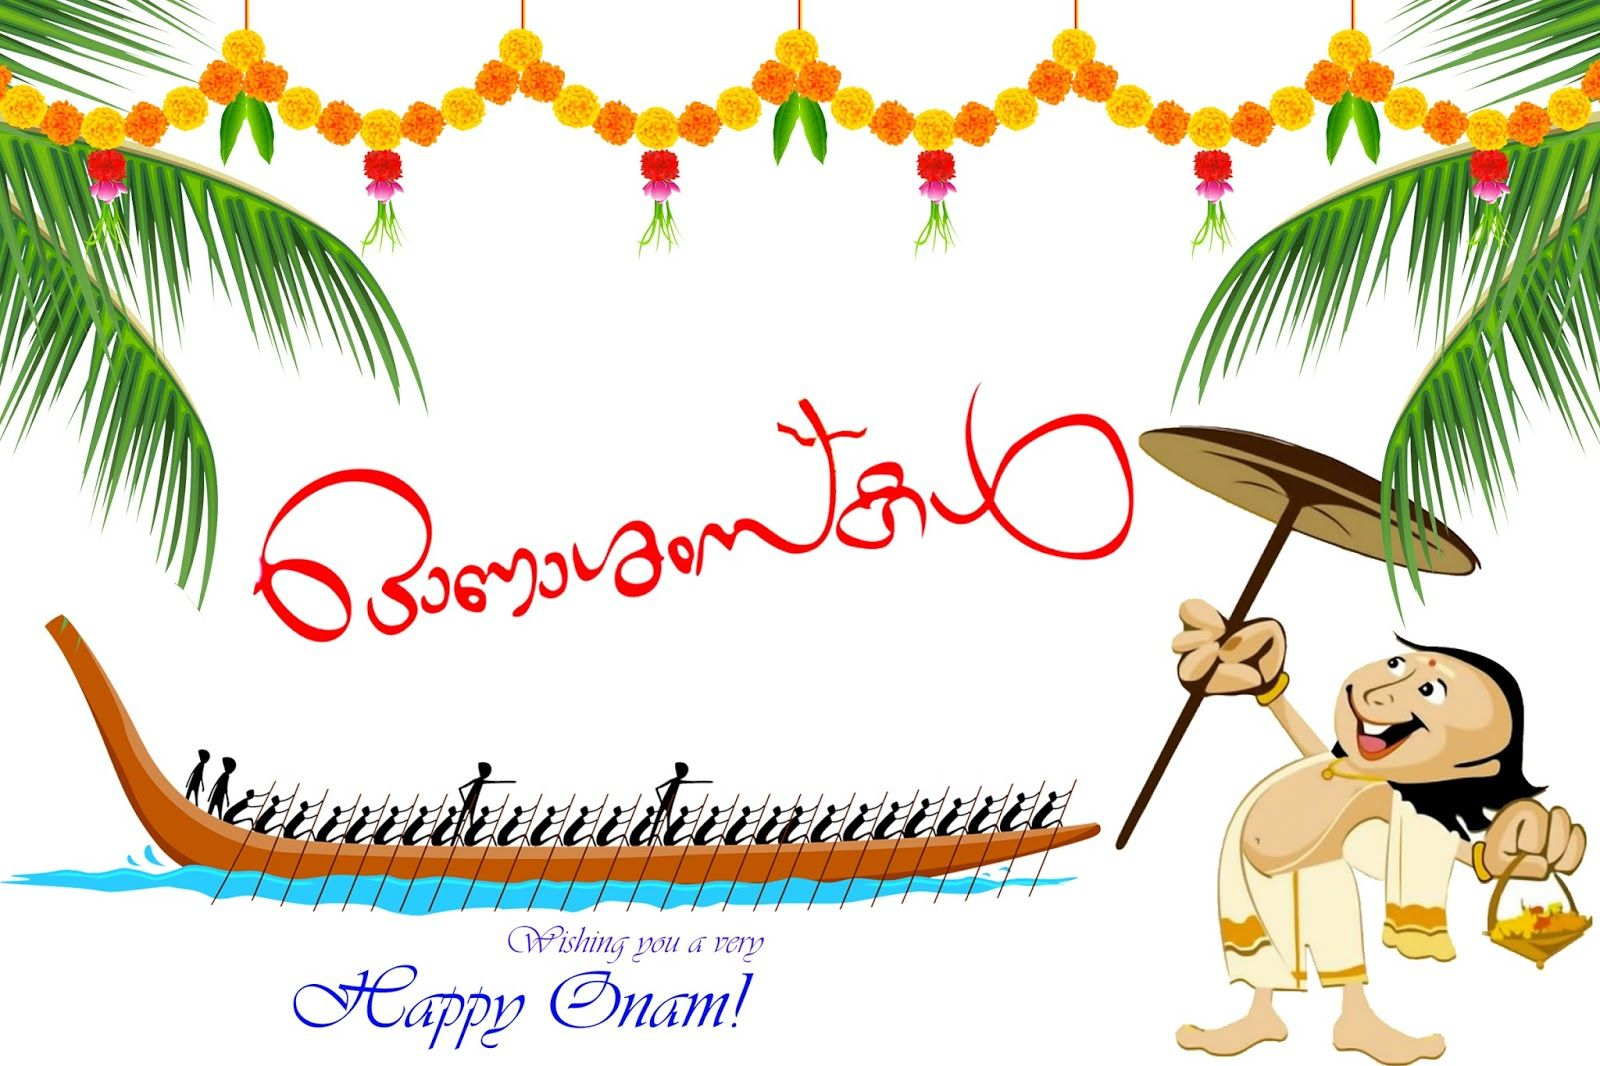 happy onam malayalam wishes . download these happy onam